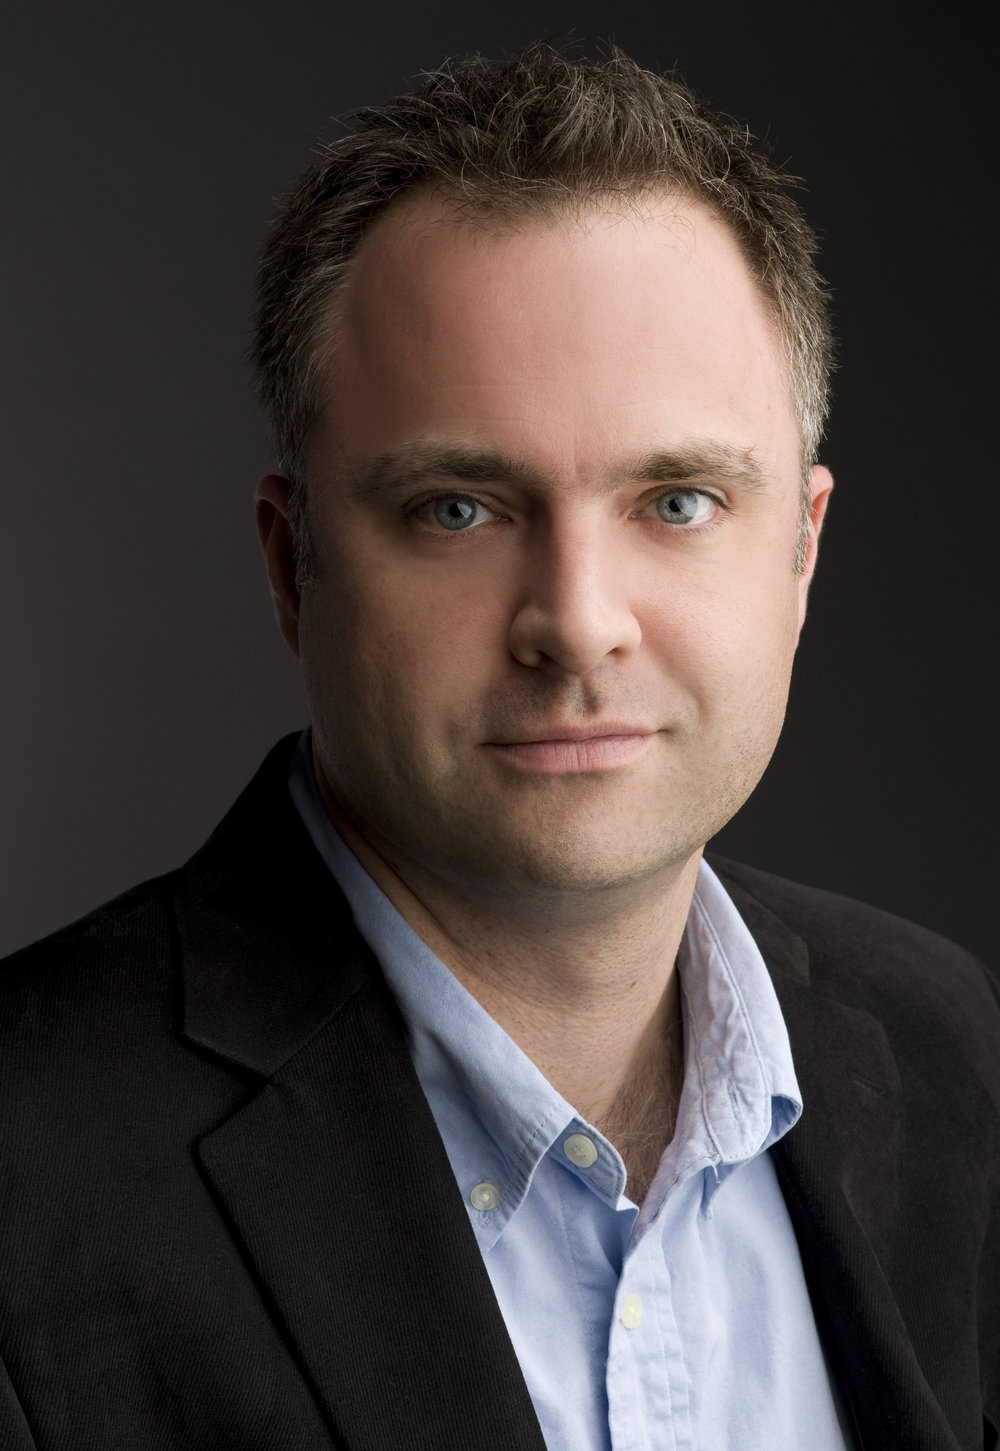 Alan Brodie - Director, Lighting DesignerAlan is thrilled to be directing for Sticks & Stones. Previous directing credits include A Few Good Men for Ensemble Theatre Co. (with Tariq Leslie), The Father for Peninsula Productions and 2BR02B at Studio 58. Upcoming directing projects include Wit for Peninsula Productions and The Drawer Boy for Ensemble Theatre Co. A veteran designer, for thirty years Alan has created lighting for theatre, dance and opera productions across Canada, in the United States and Europe. He has received 10 Jessie Awards for Lighting Design, as well as Dora, Betty Mitchell and Sterling Awards and a Bay Area Critics Circle Award. His most recent productions include Hir (Pi Theatre), A Christmas Carol (Soulpepper), Mustard (Arts Club / Belfry) and The Overcoat: a musical tailoring at Vancouver Opera.He is excited to be expanding his theatrical practice to include directing for the stage, and grateful for the opportunity